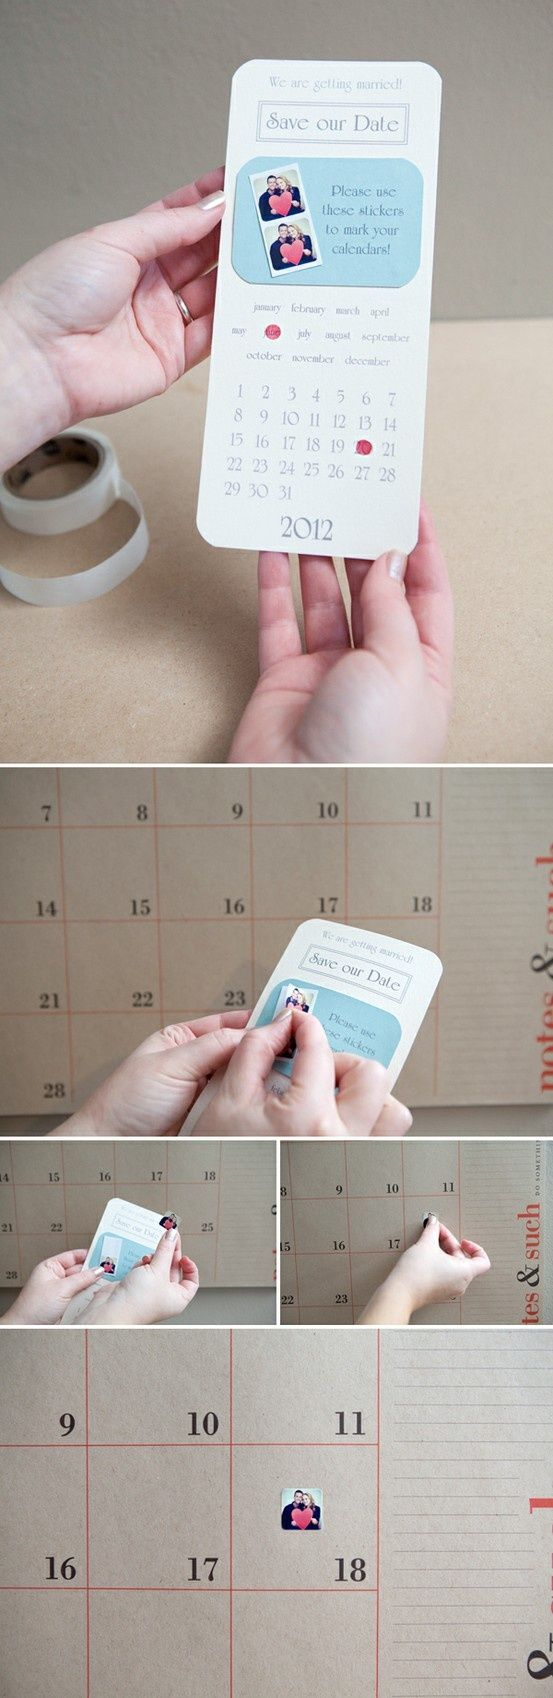 Save the date with photo stickers for guests to mark their calendars